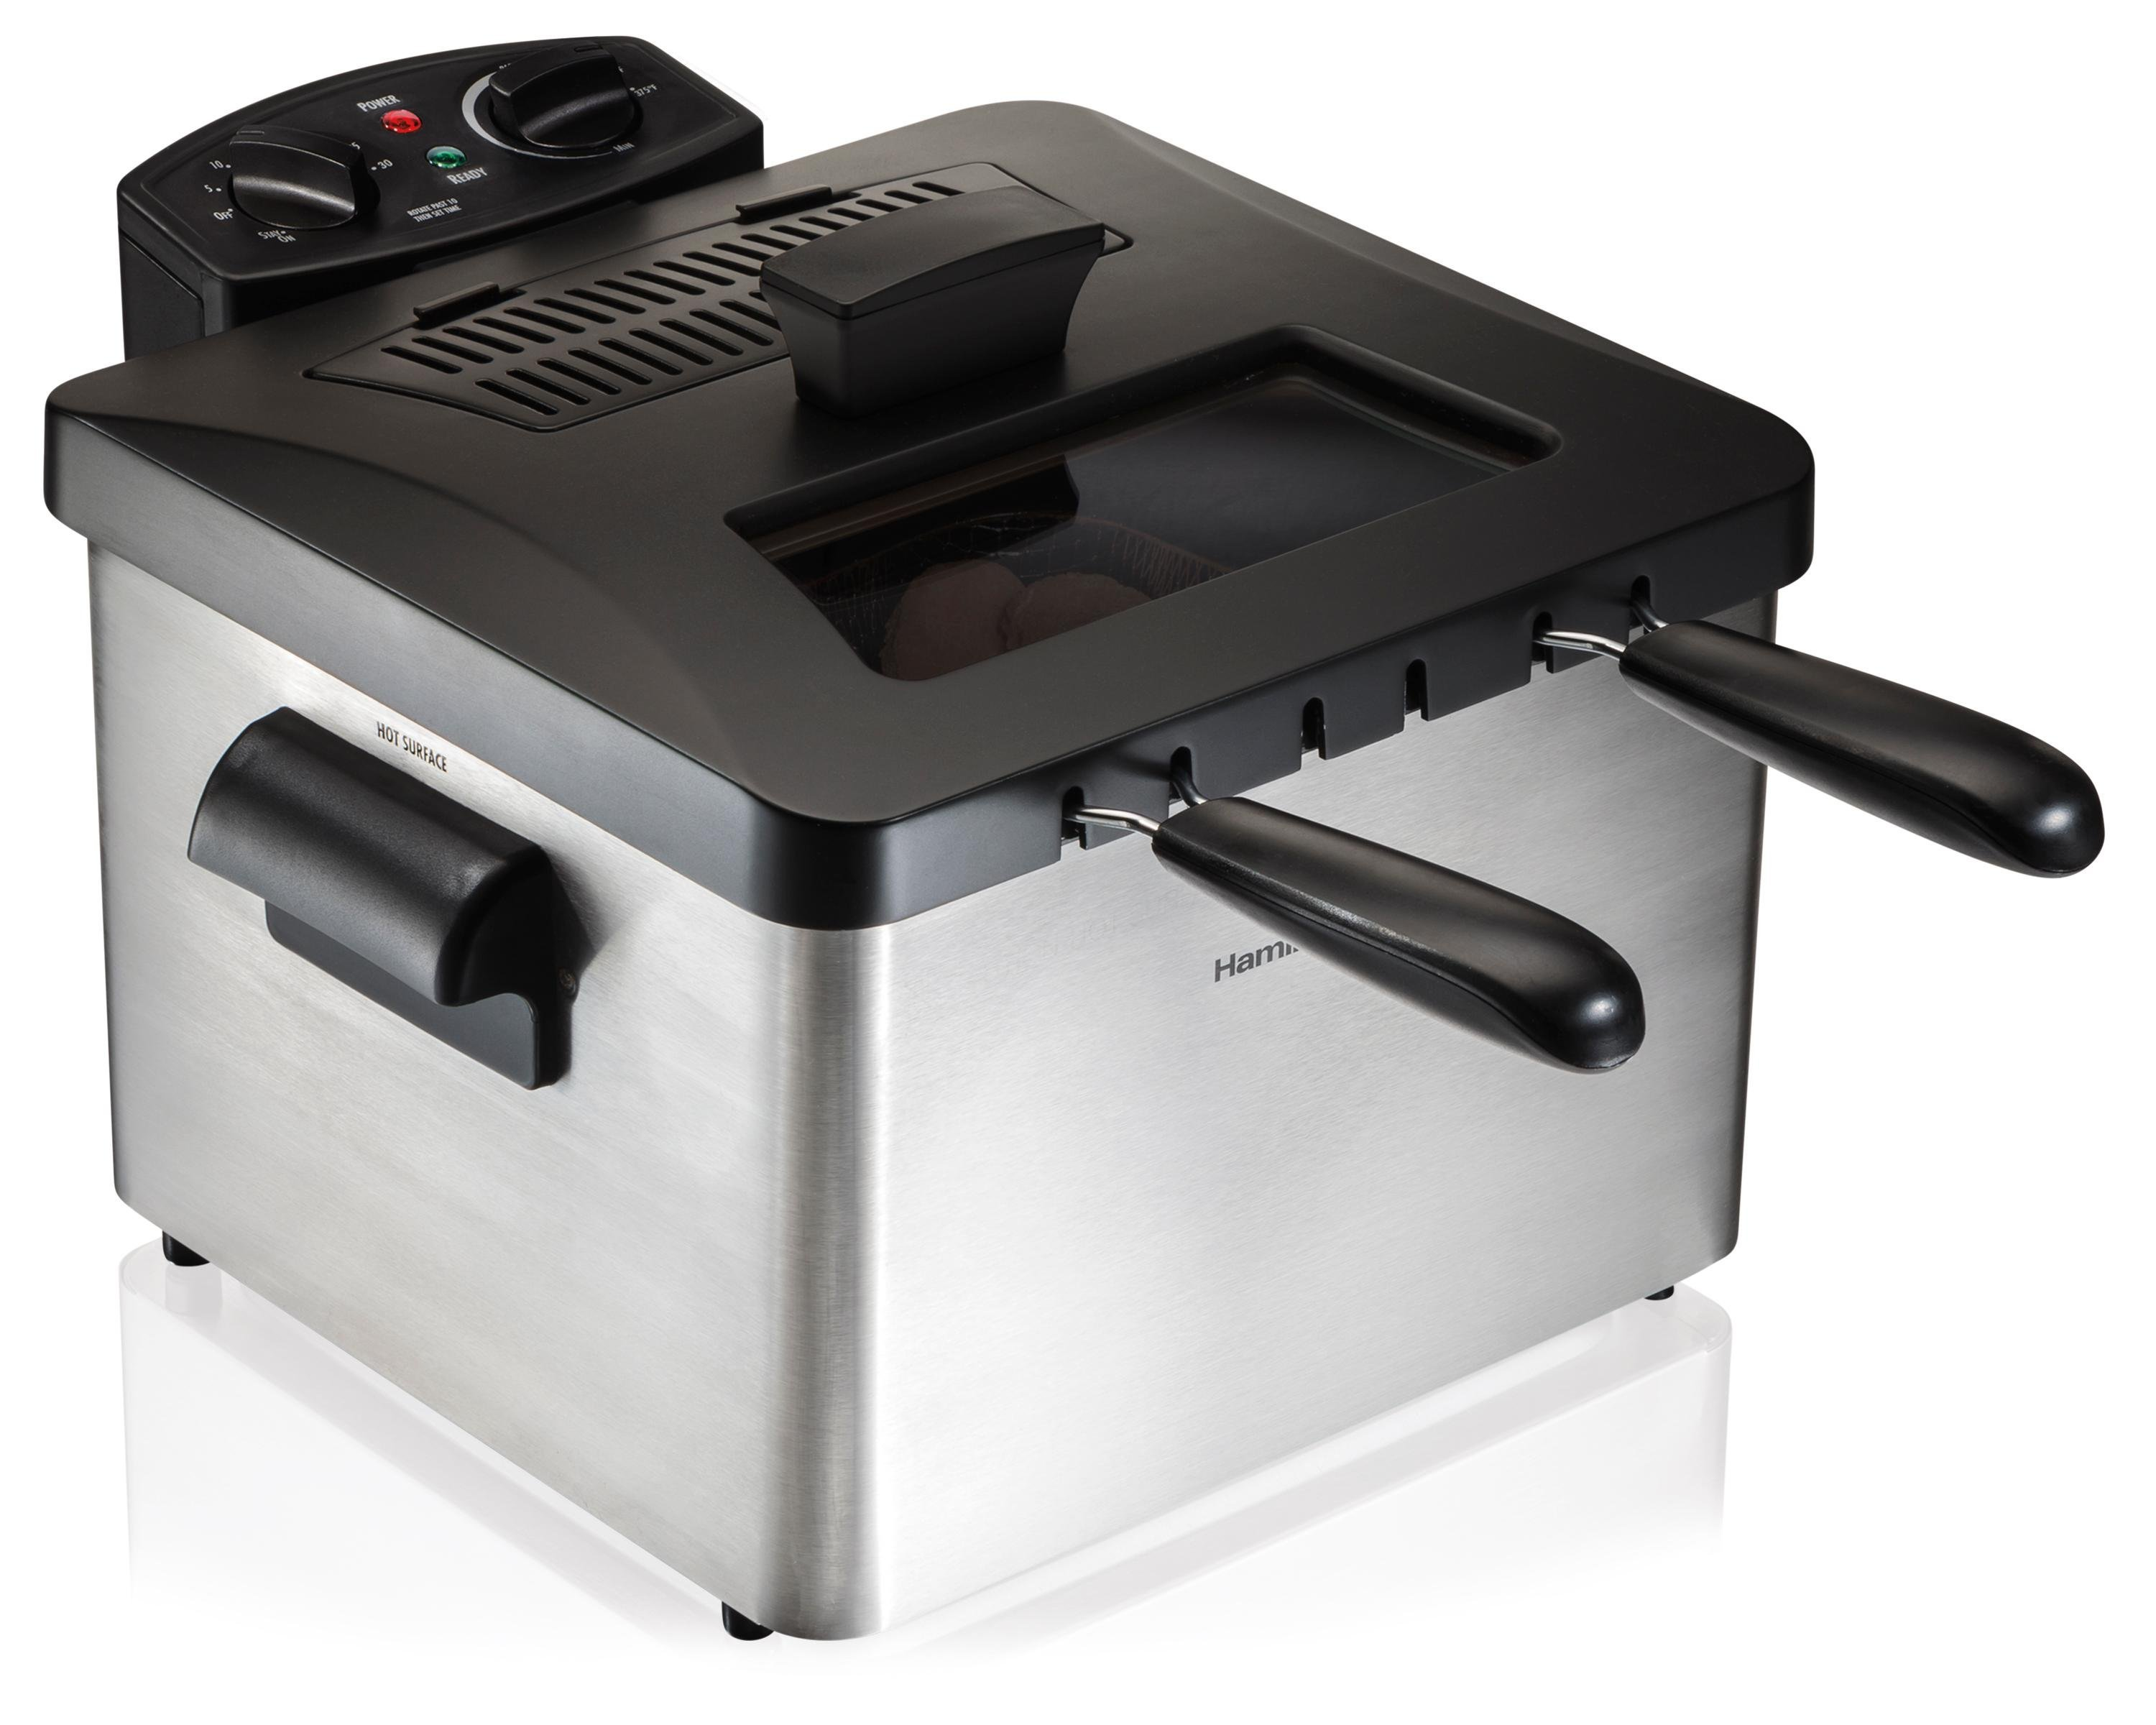 Hamilton beach electric deep fryer 4 5 liter for Electric fish fryer